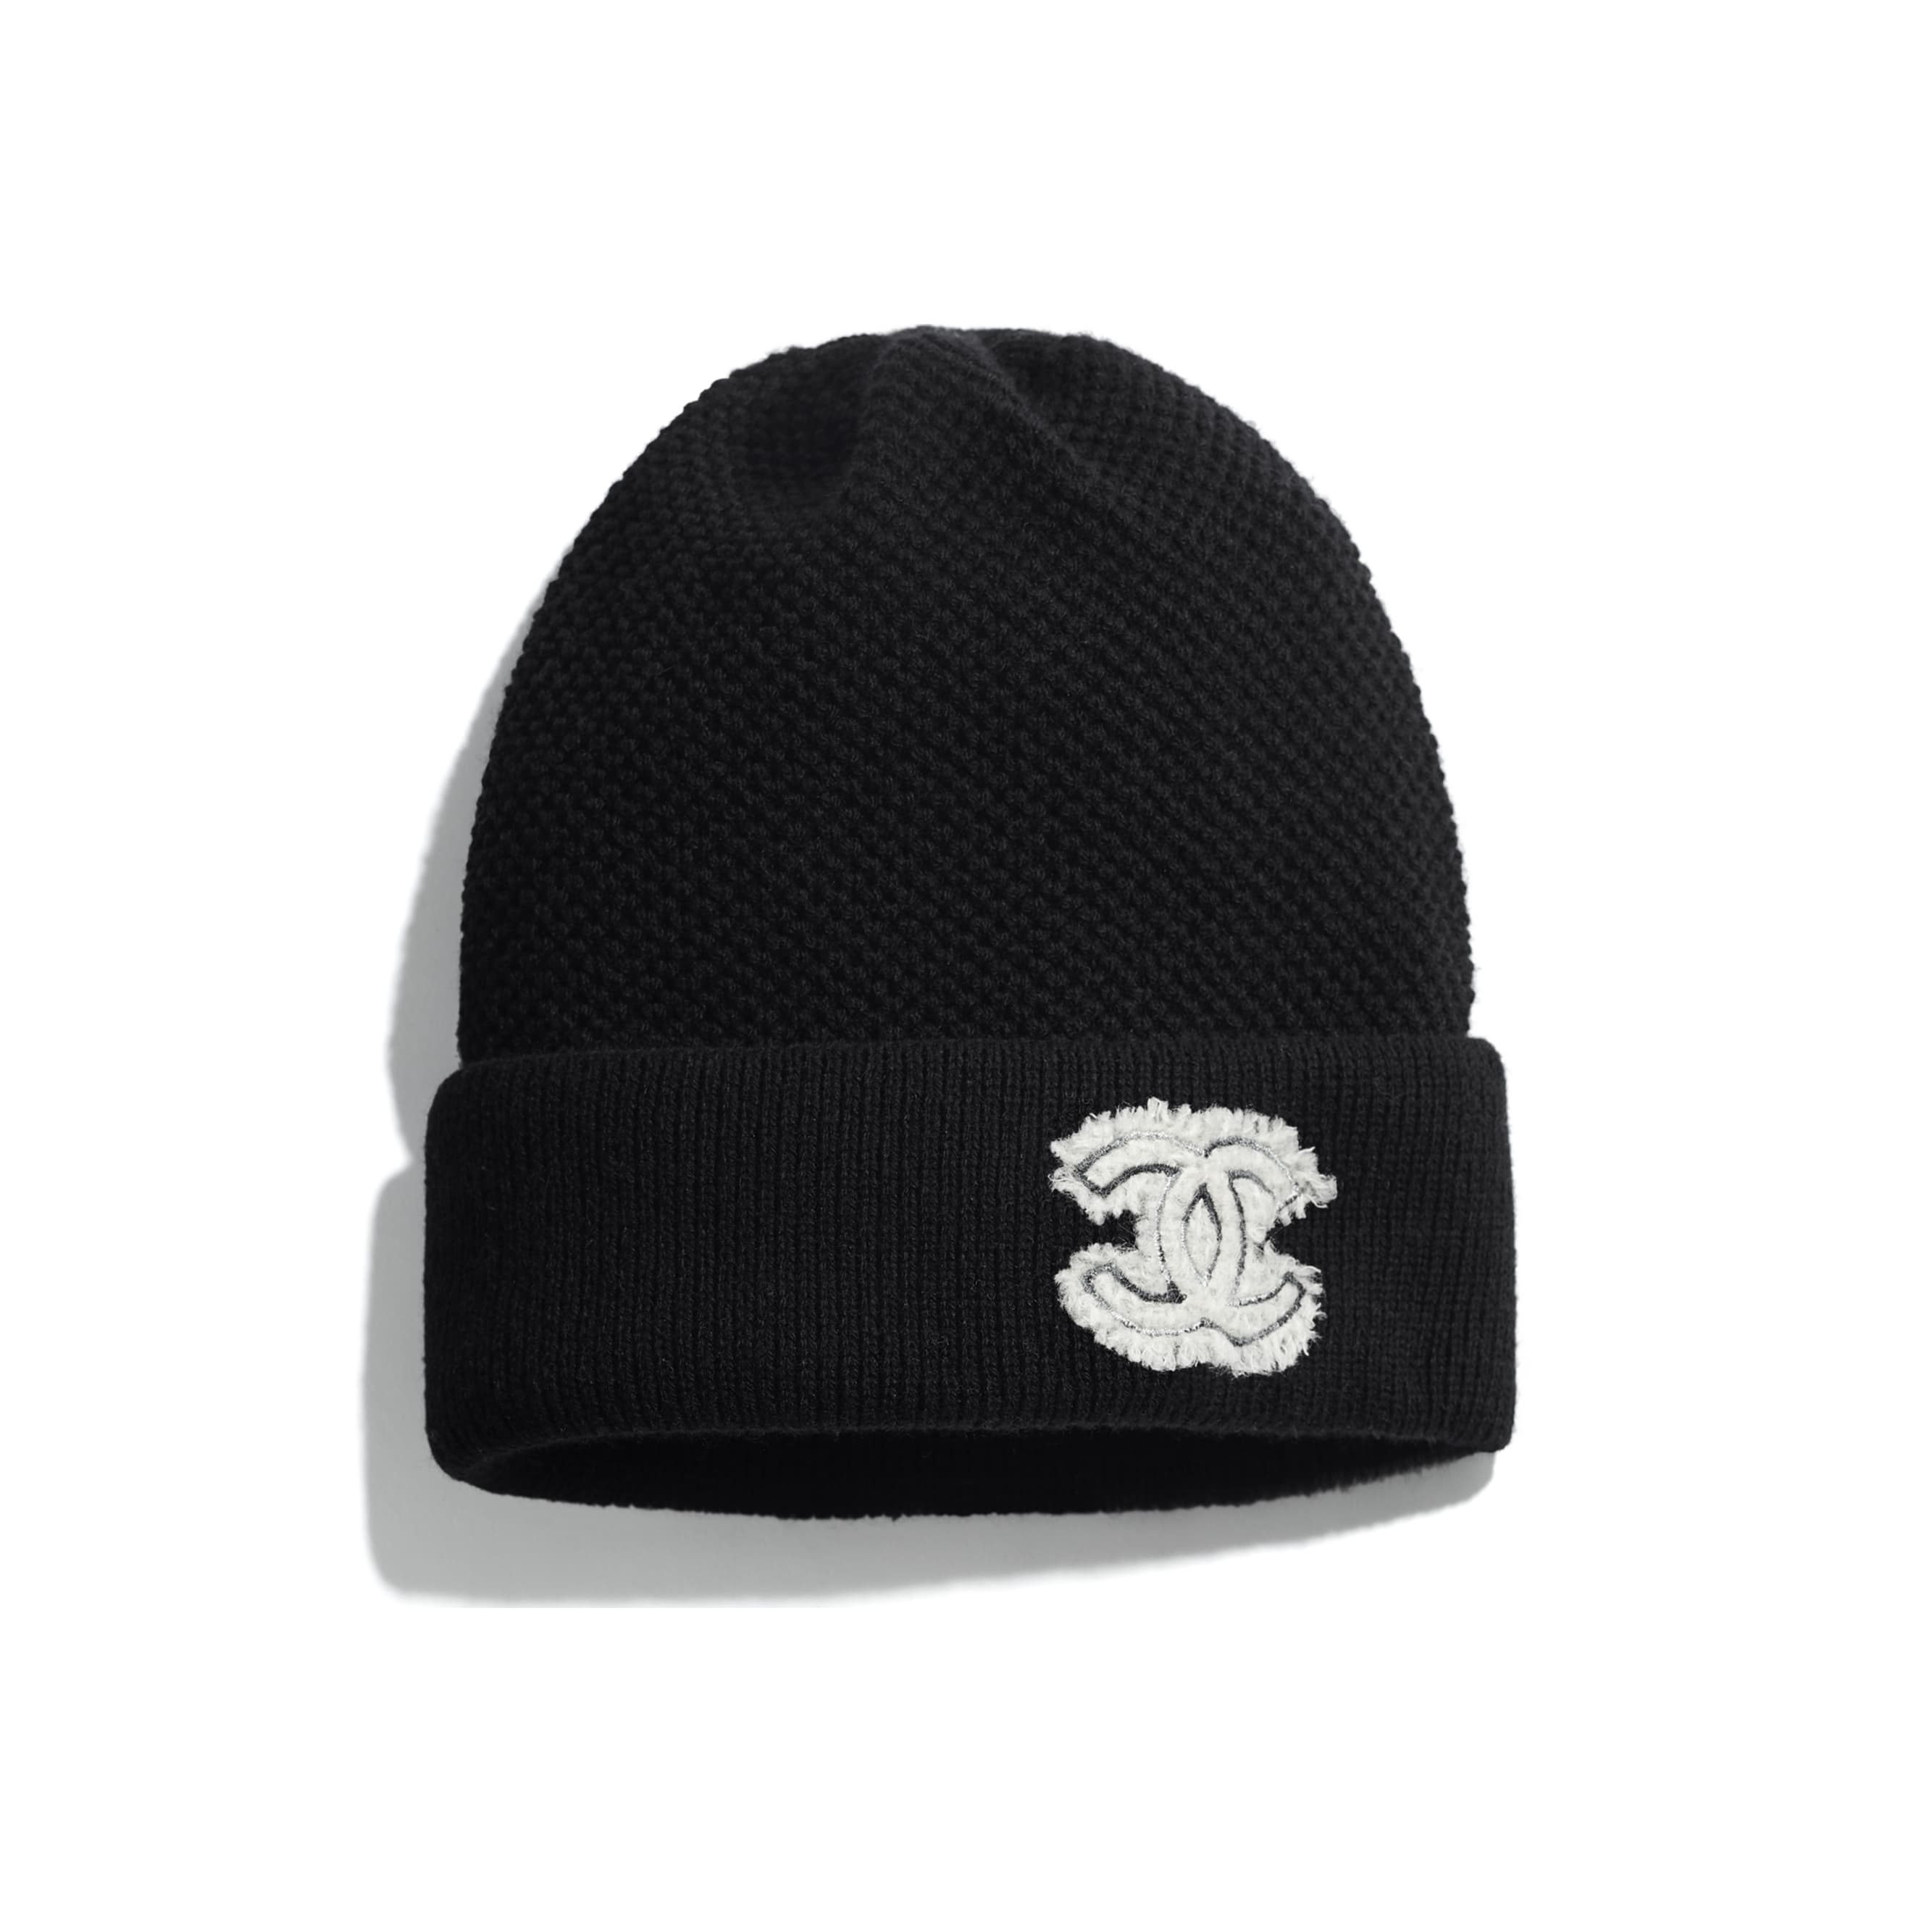 Beanie - Black - Cashmere & Tweed - CHANEL - Default view - see standard sized version